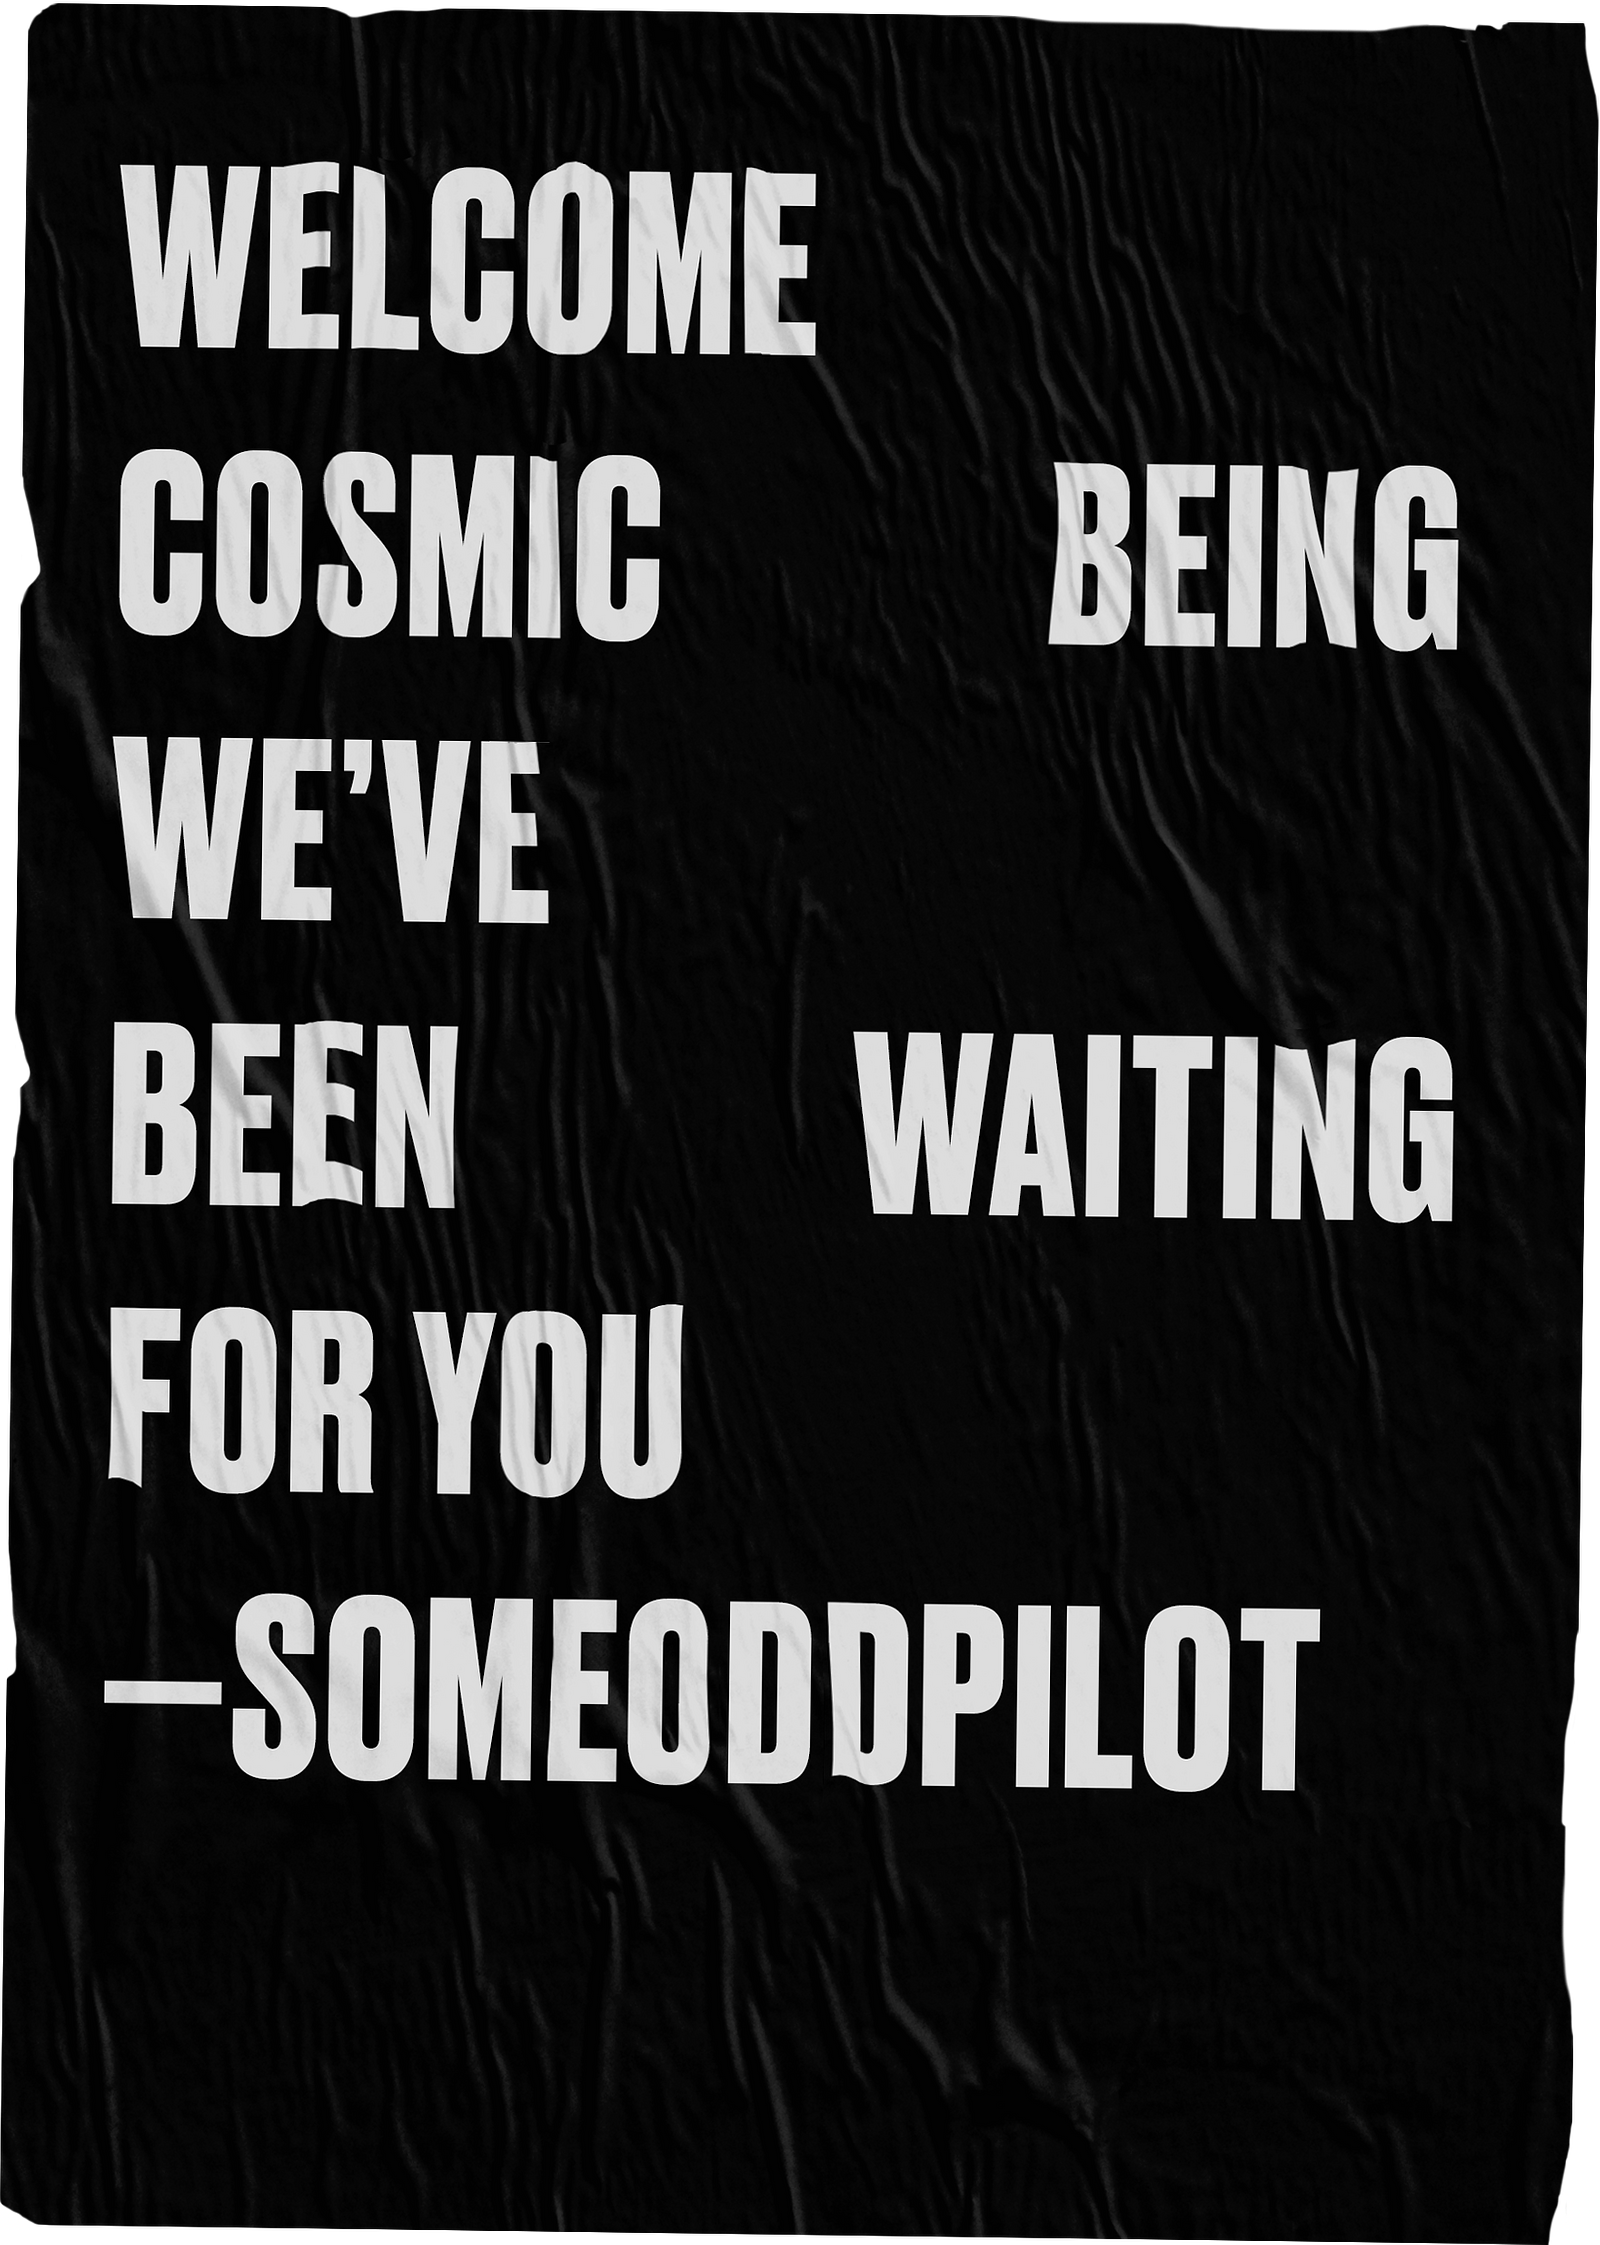 WELCOME COSMIC BEING WE'VE BEEN WAITING FOR YOU --SOMEODDPILOT